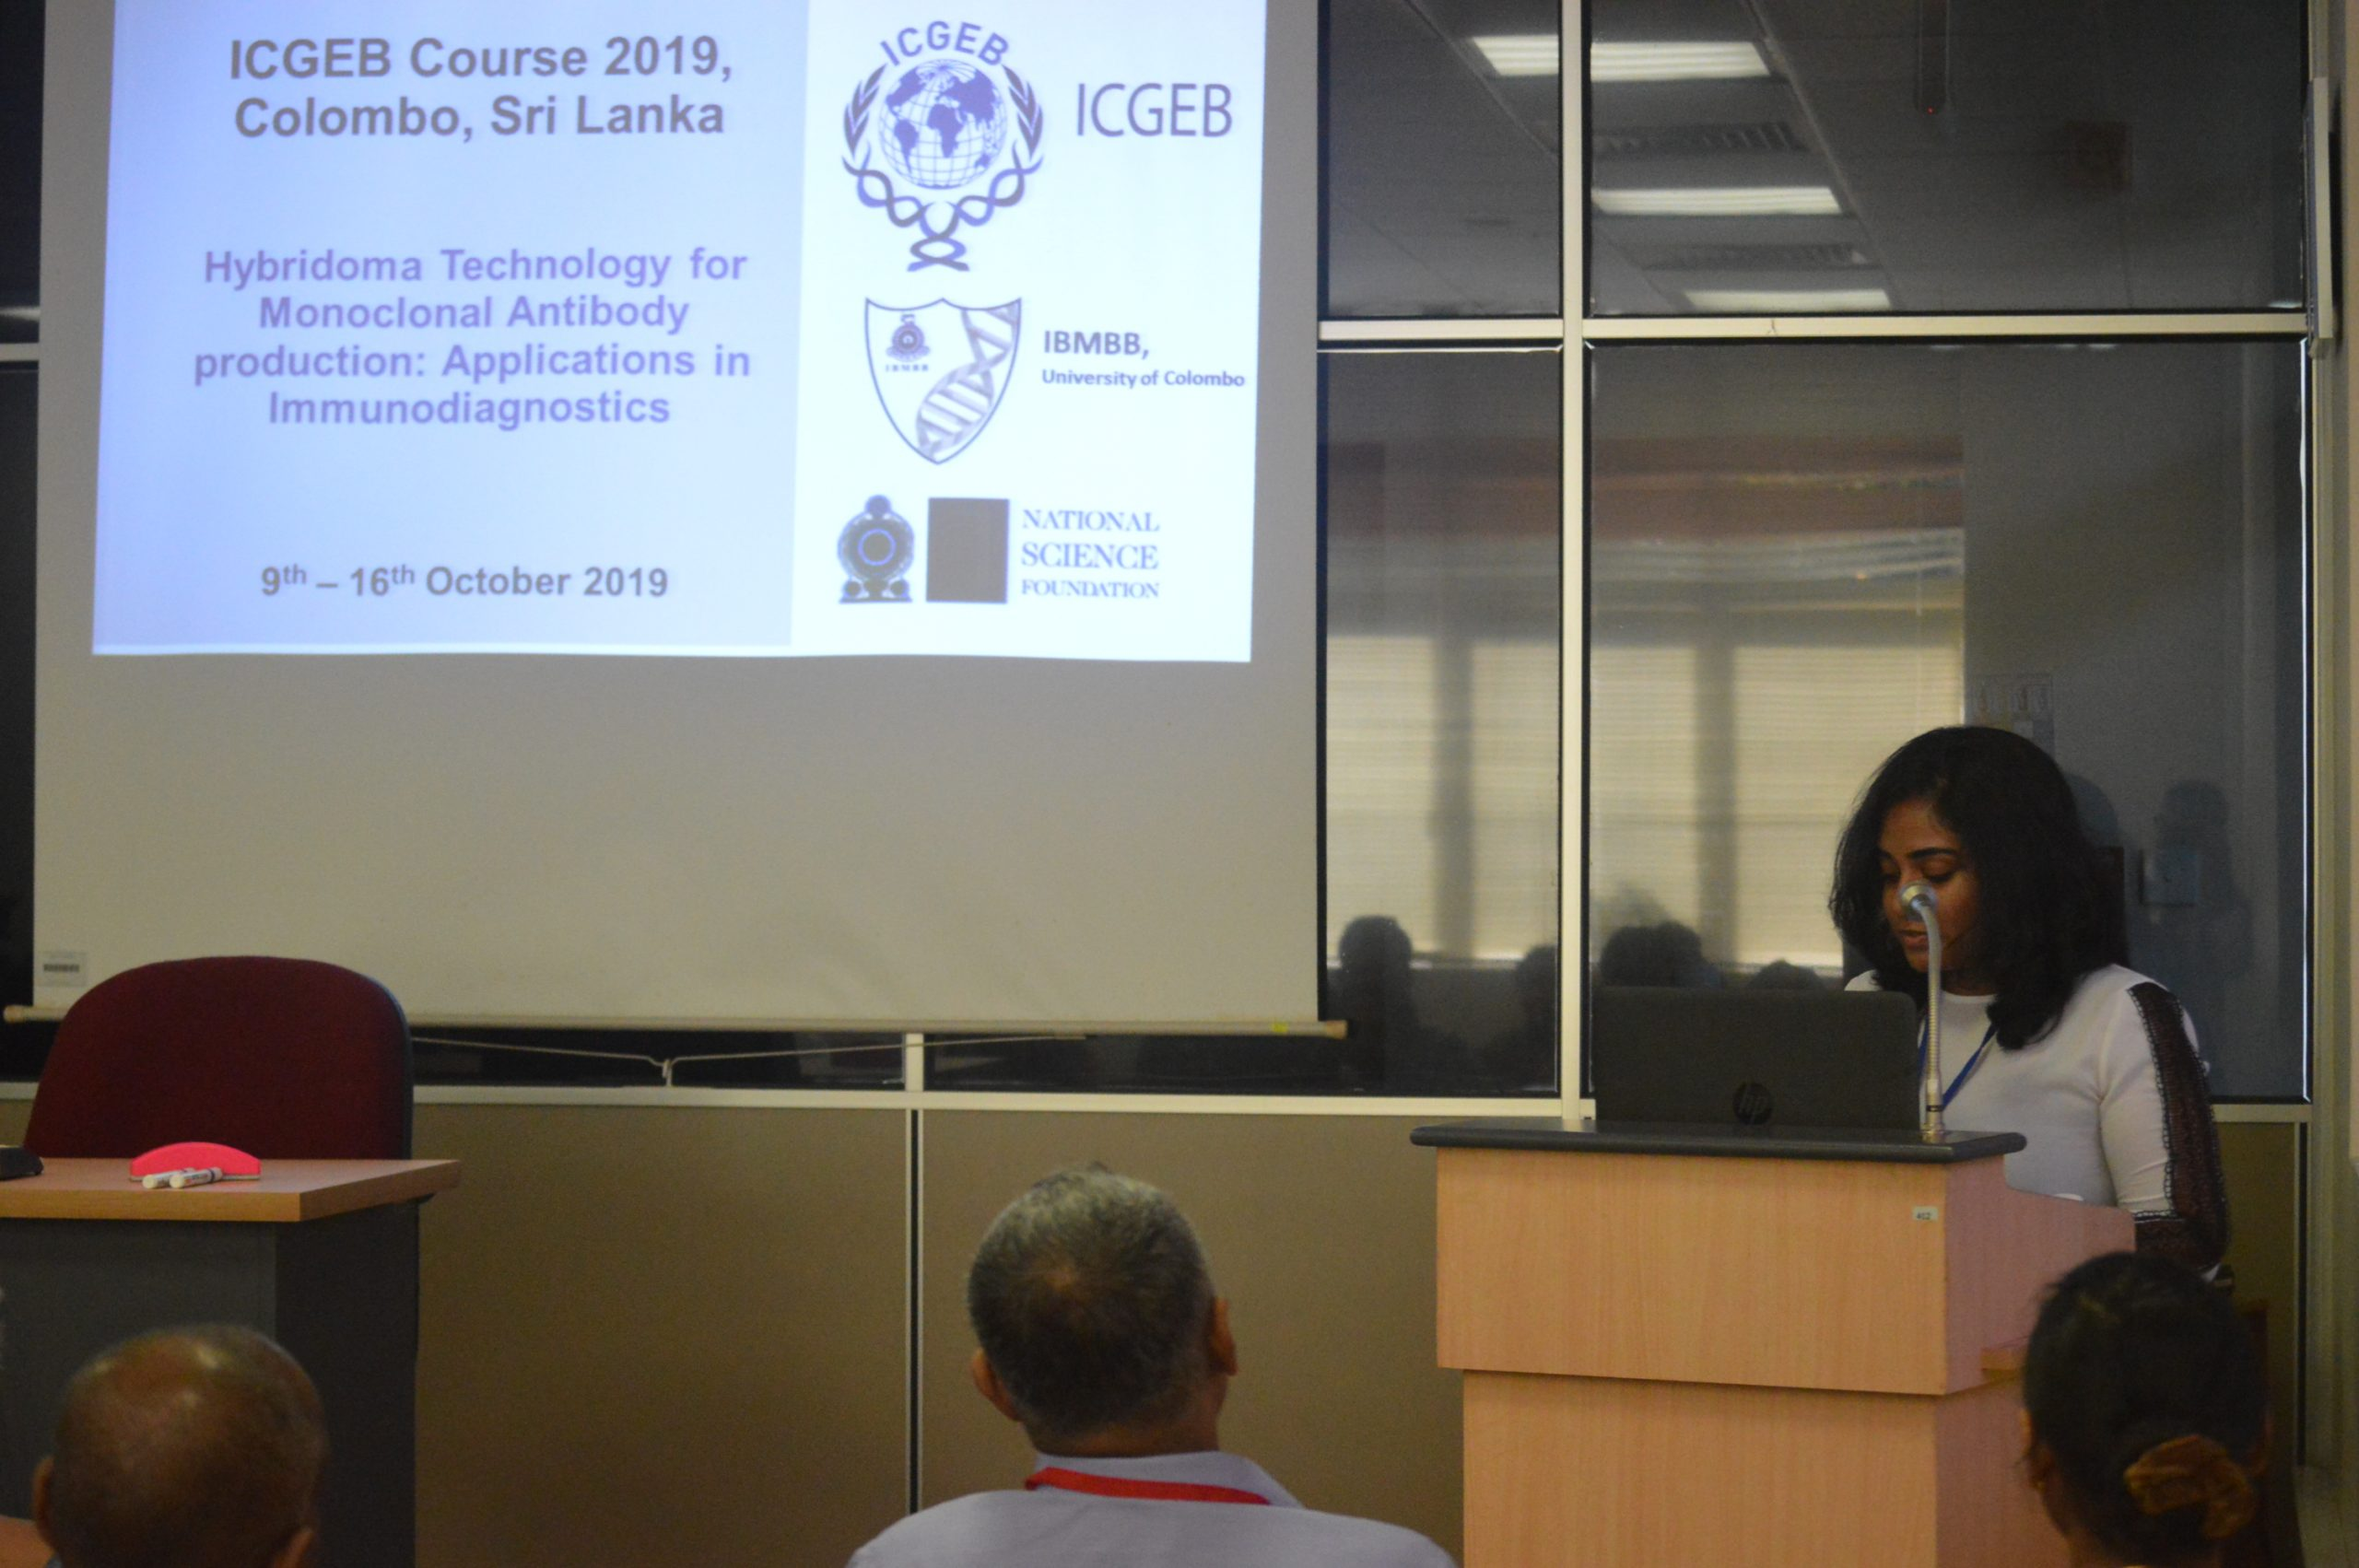 ICGEB Course 2019, Colombo, Sri Lanka 9th – 16th October 2019